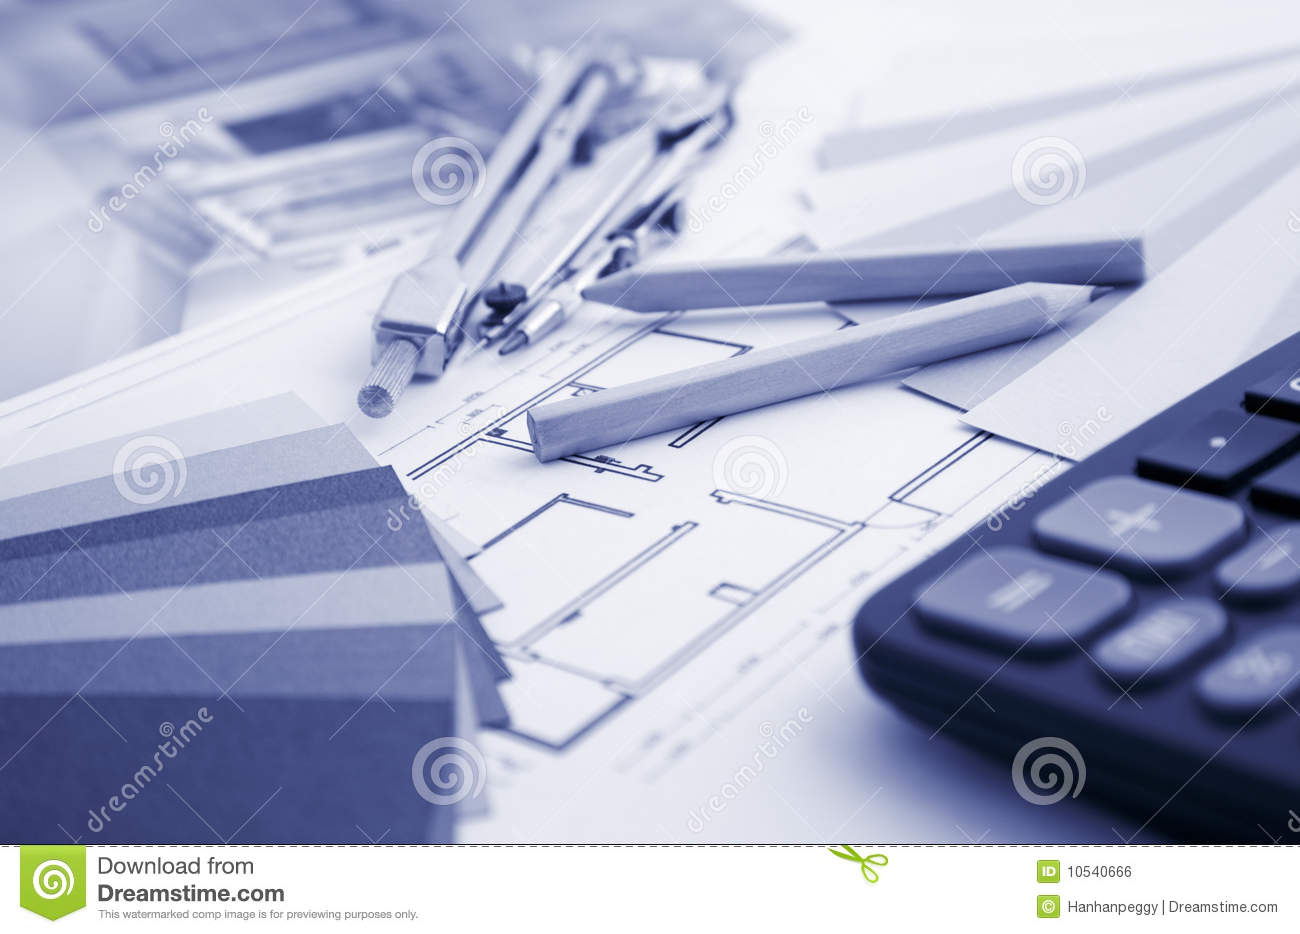 Residential interior design and tools royalty free stock - Online interior design tool ...